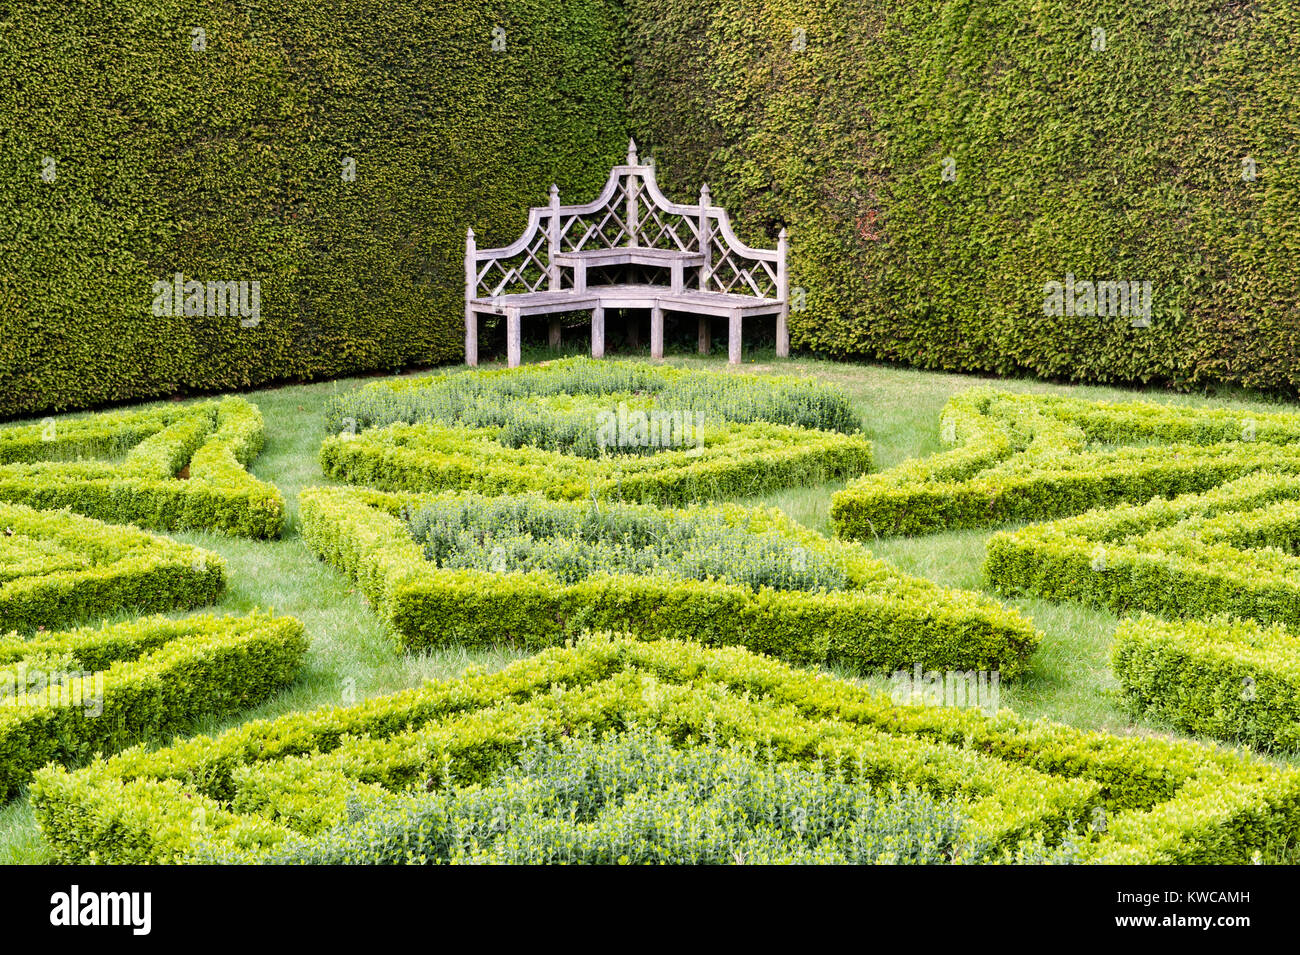 Antony House, Torpoint, Cornwall, UK. The secluded Knot Garden, with its ornate wooden bench - Stock Image